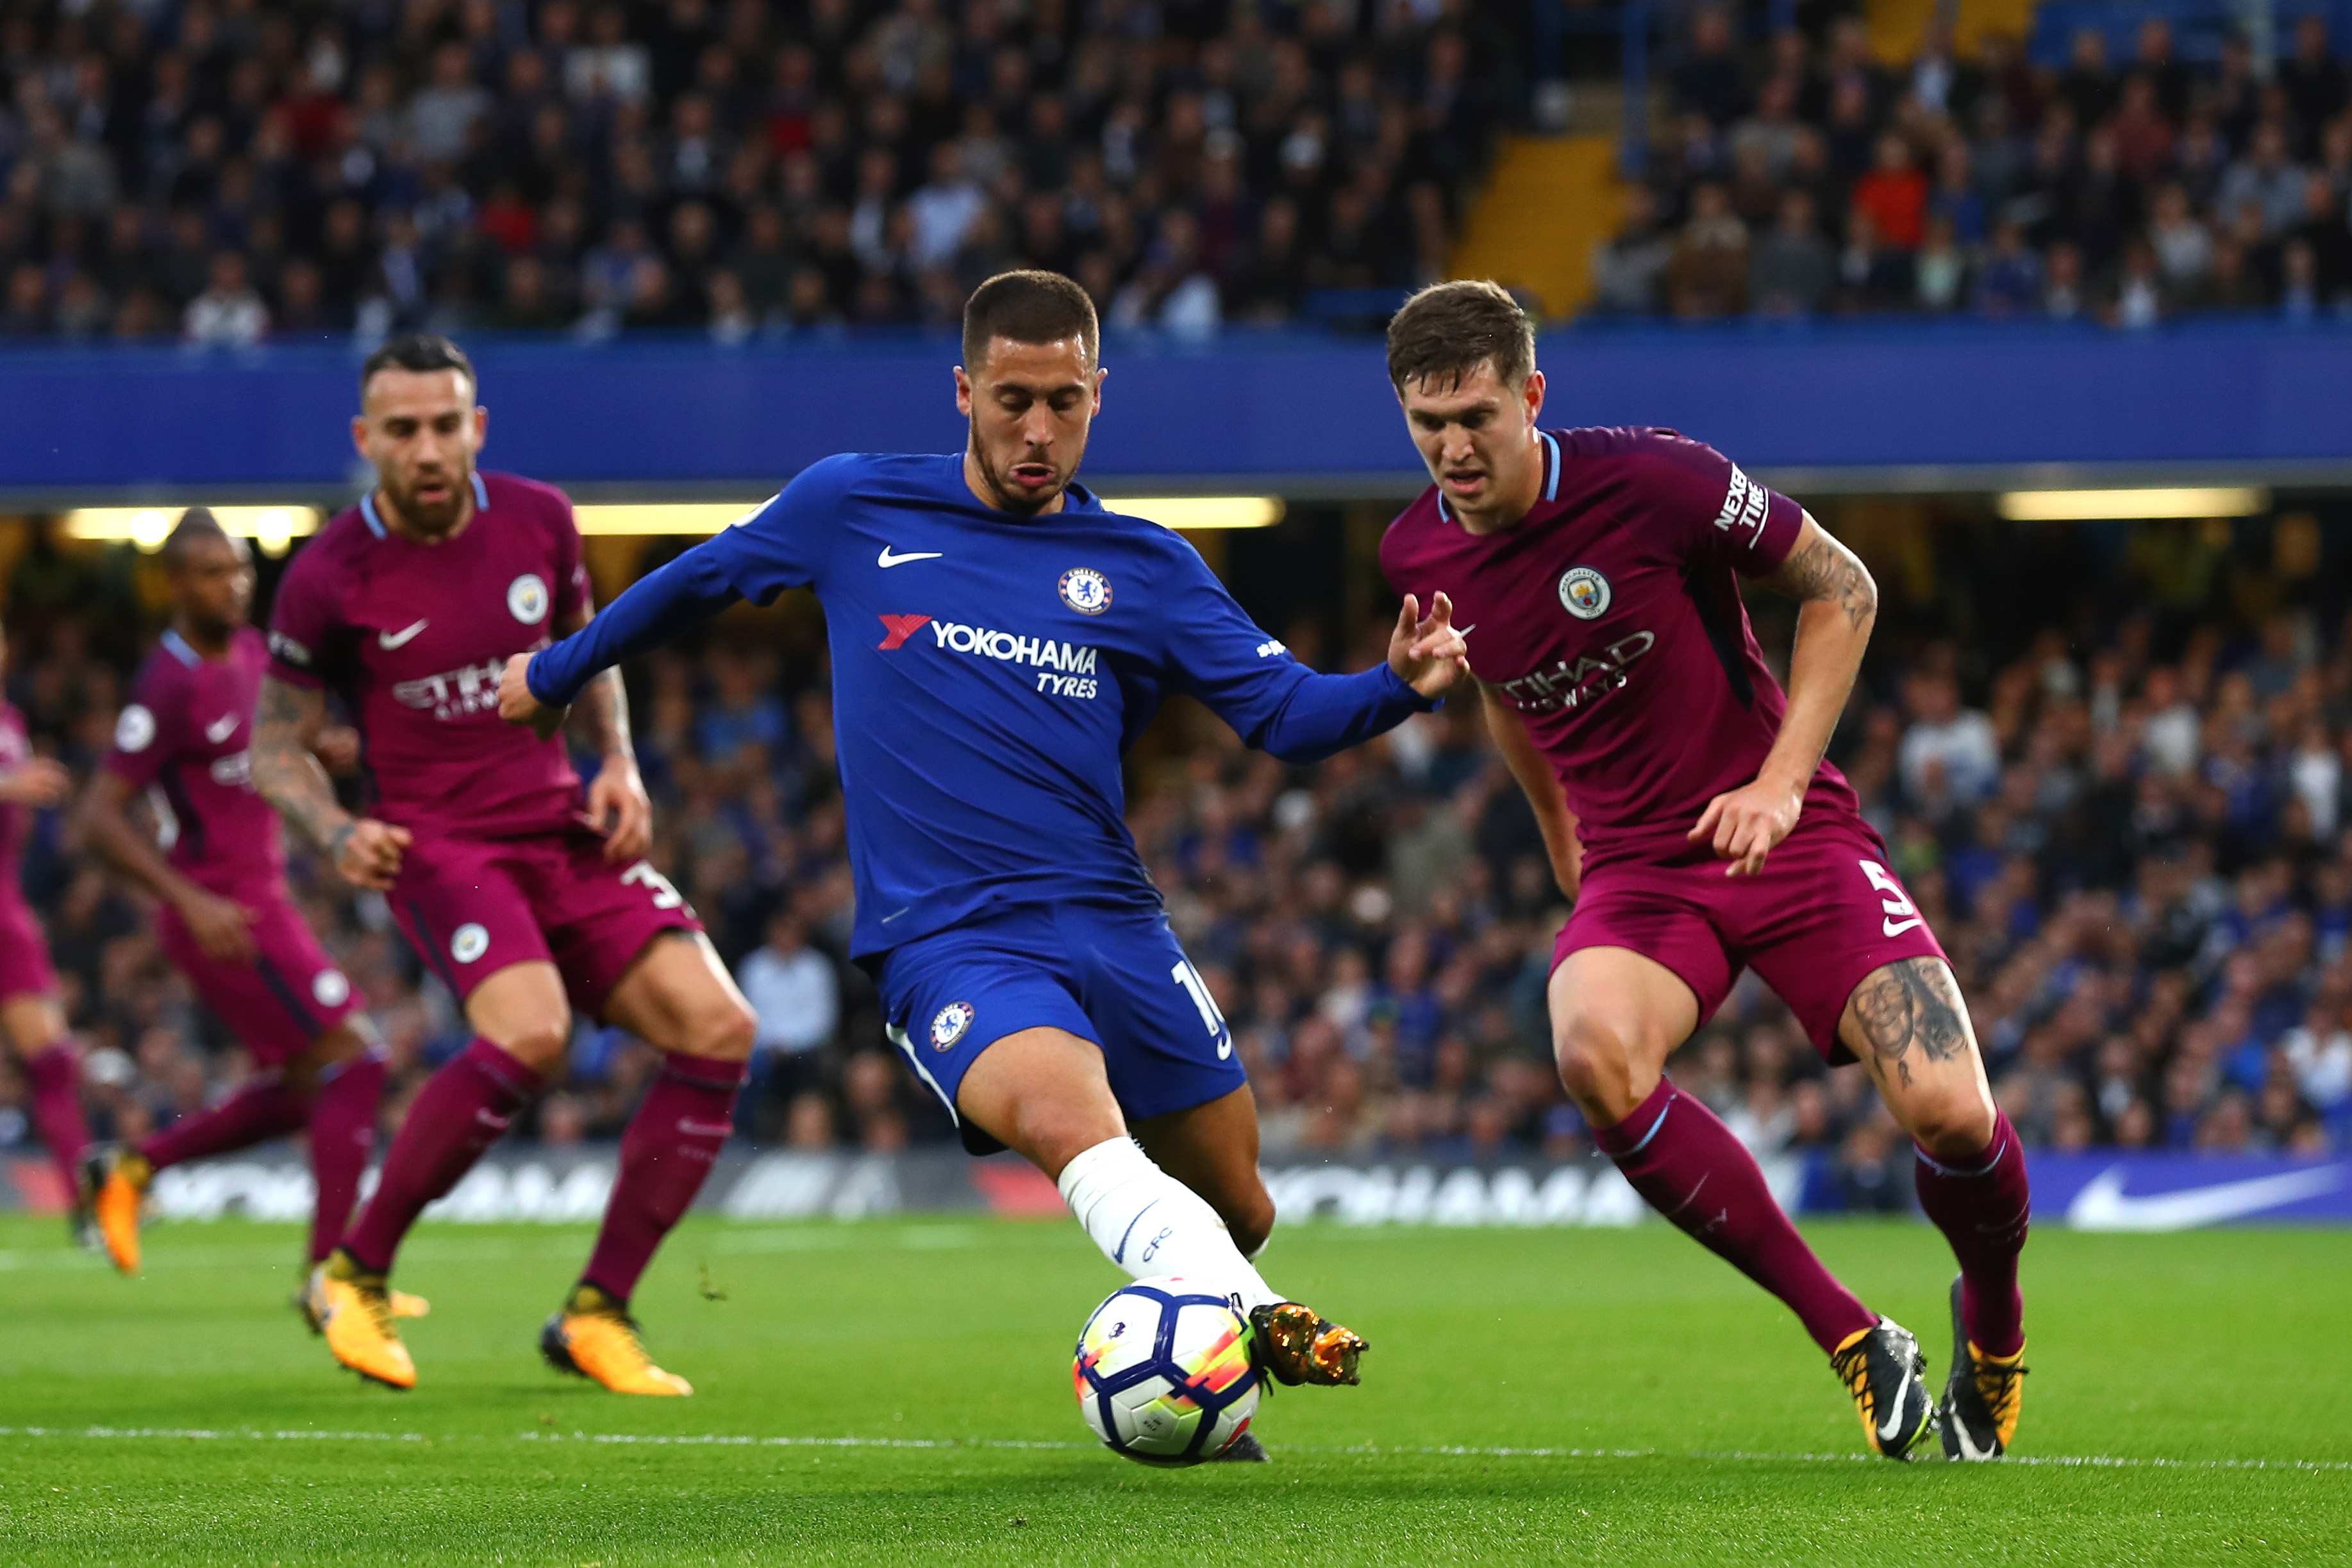 Chelsea Vs Man City: Chelsea Dismantled By Manchester City In Disheartening